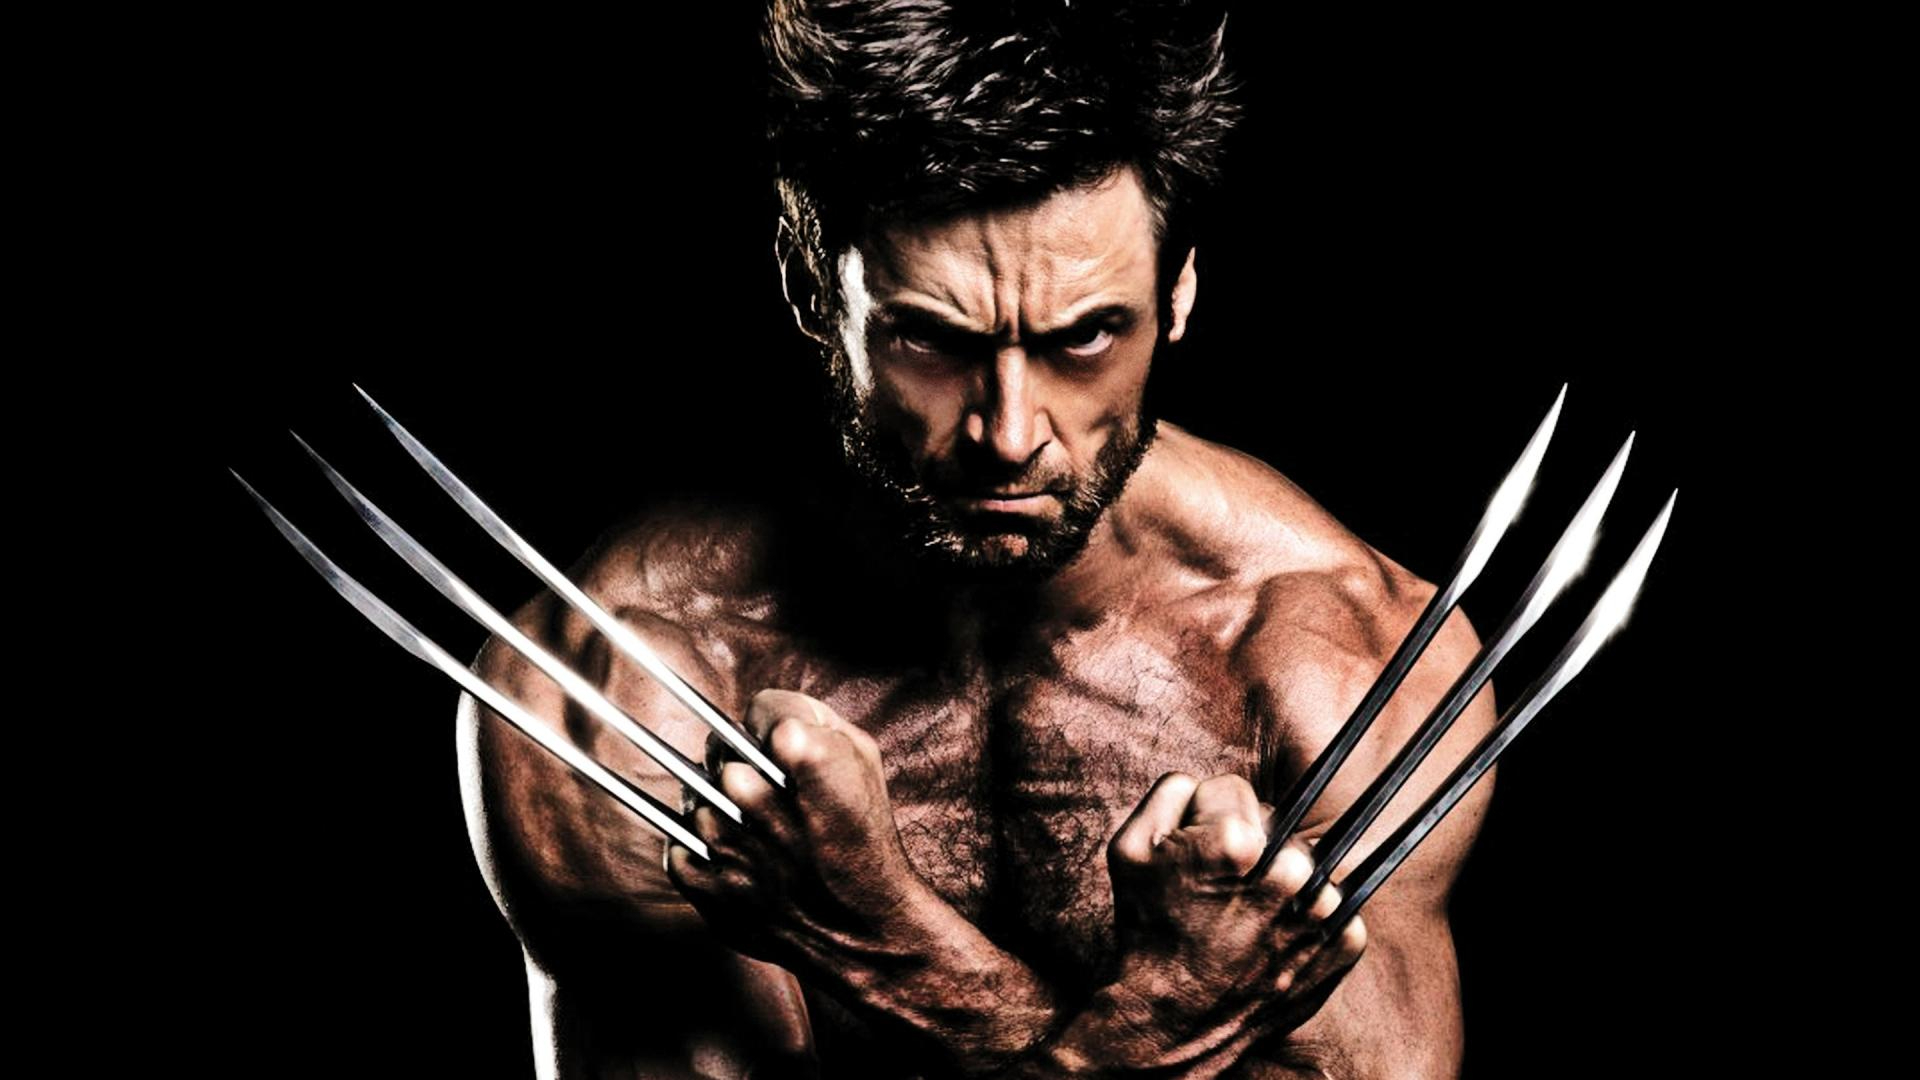 Hugh Jackman Returning As Wolverine In This Other Movie Too